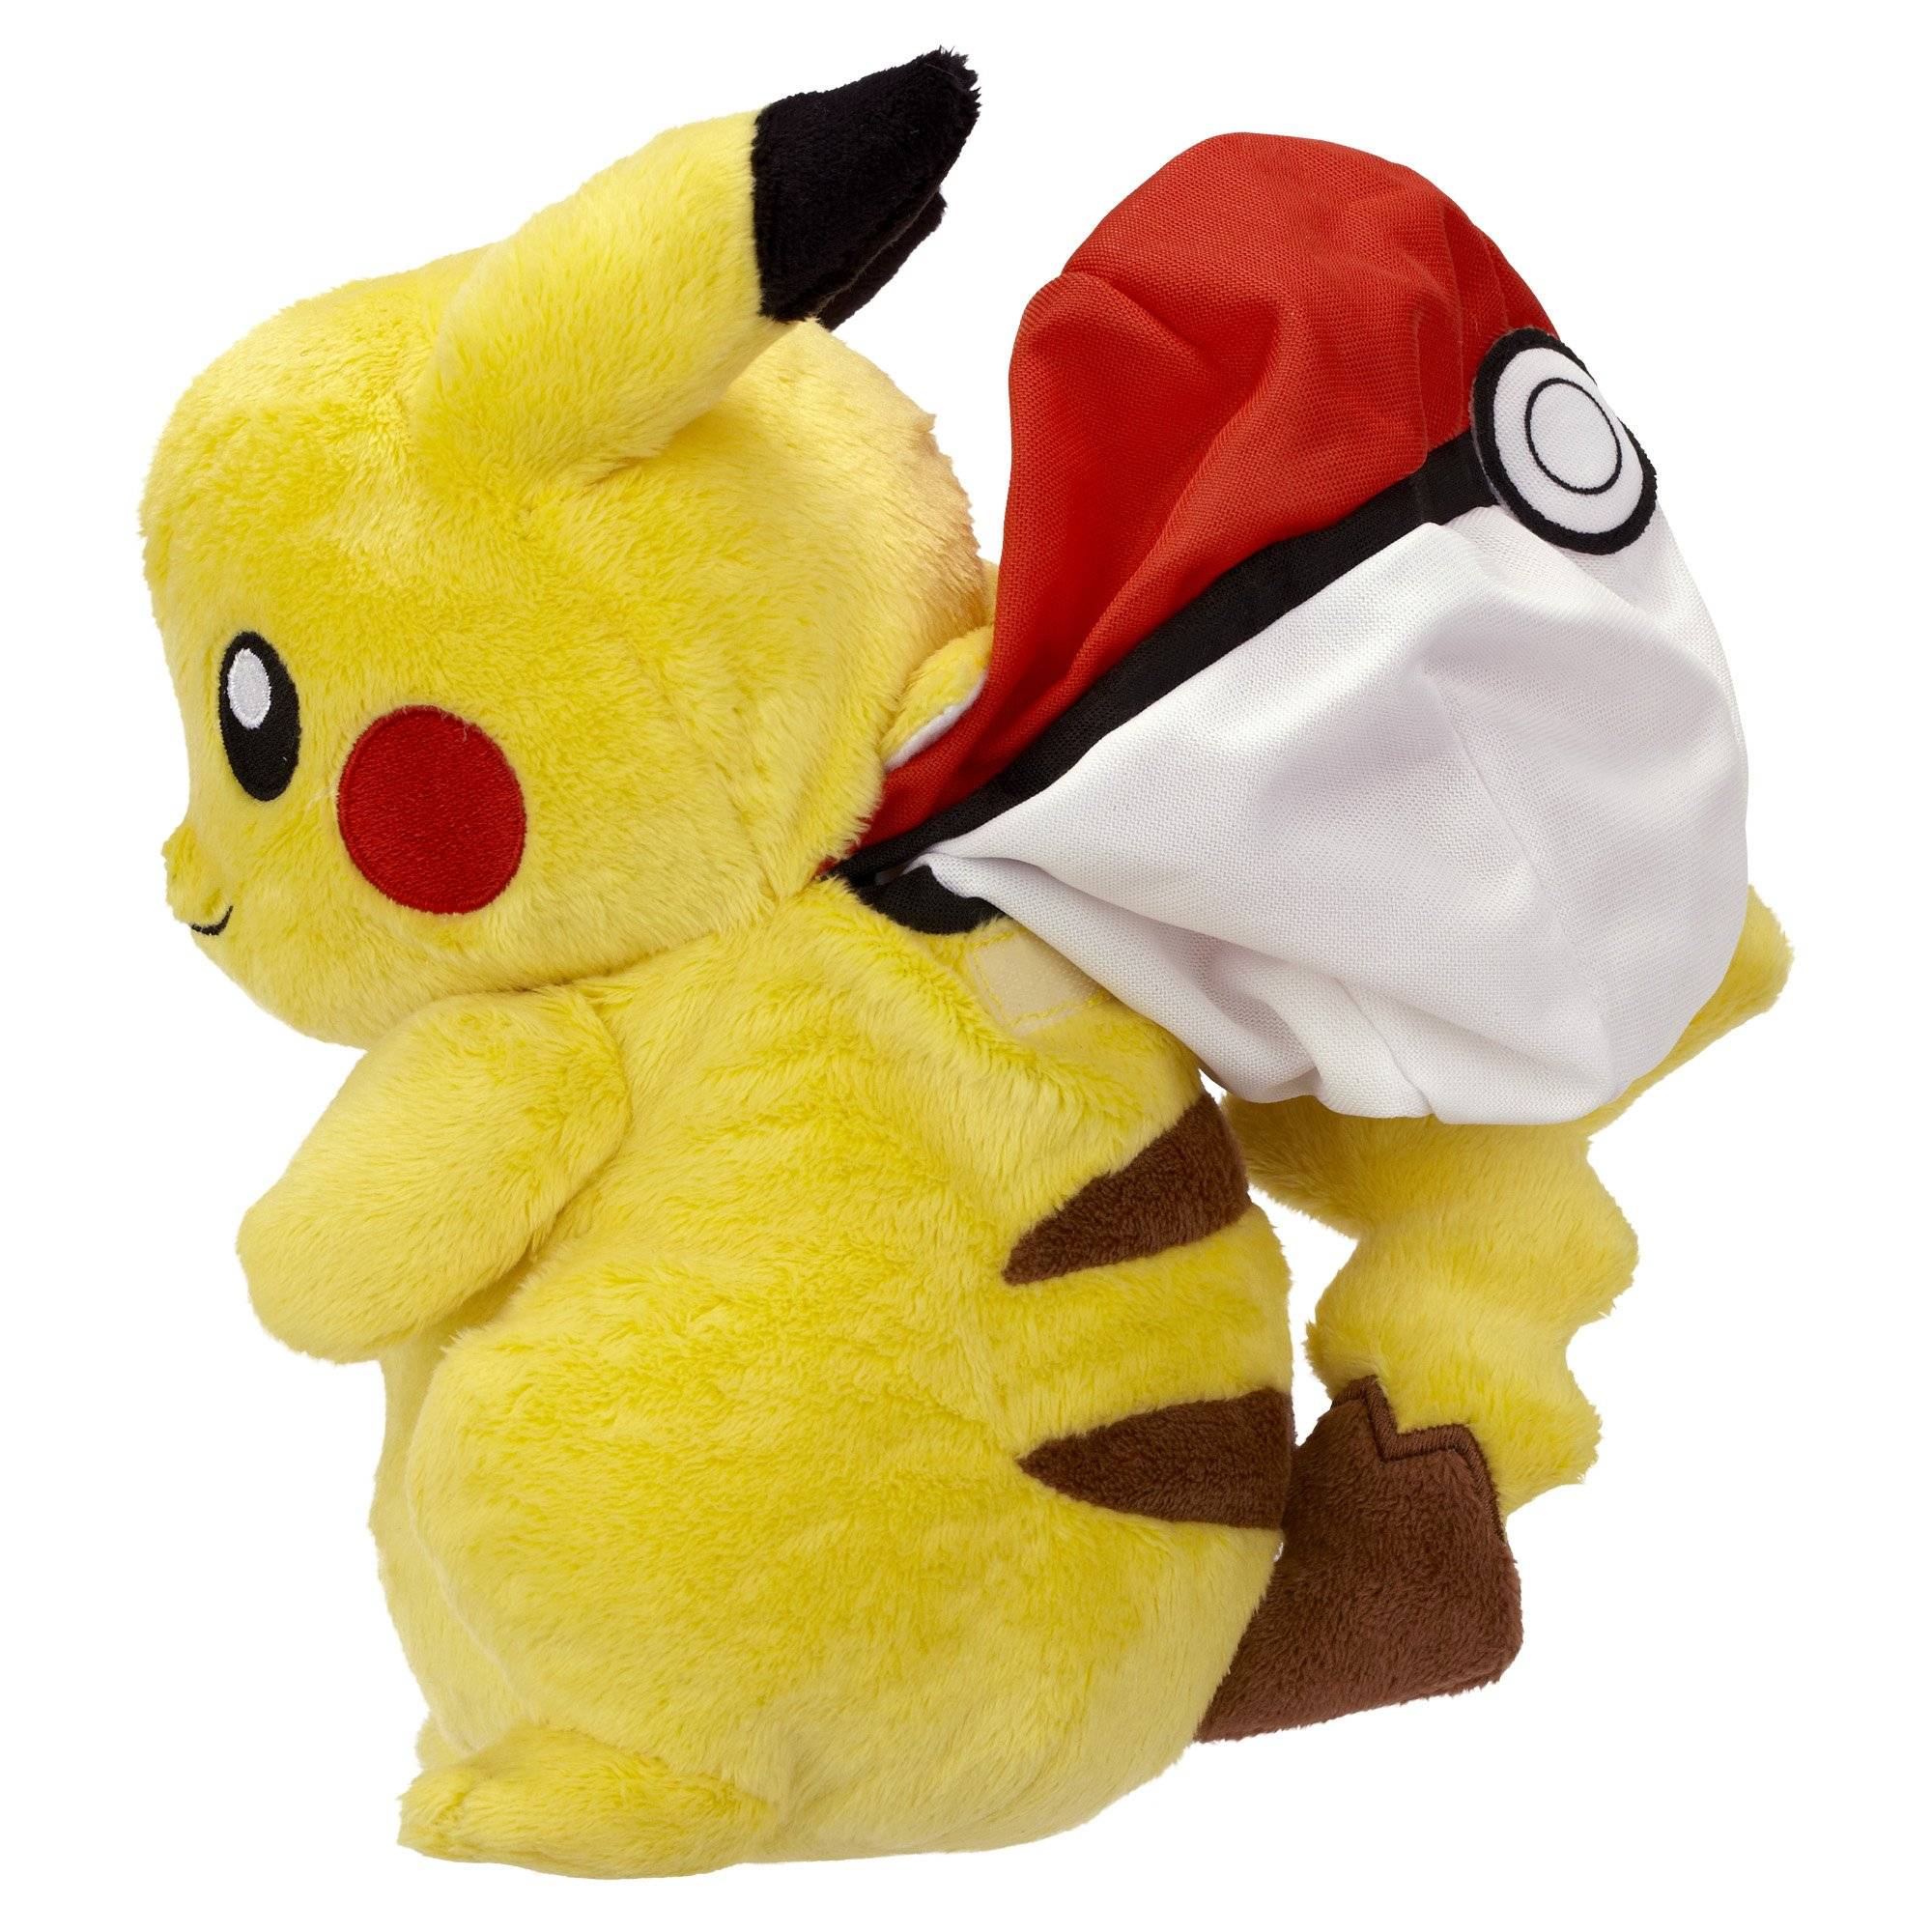 Reversible Plush B&W Series #2 Pikachu Into Poké Ball ~8""